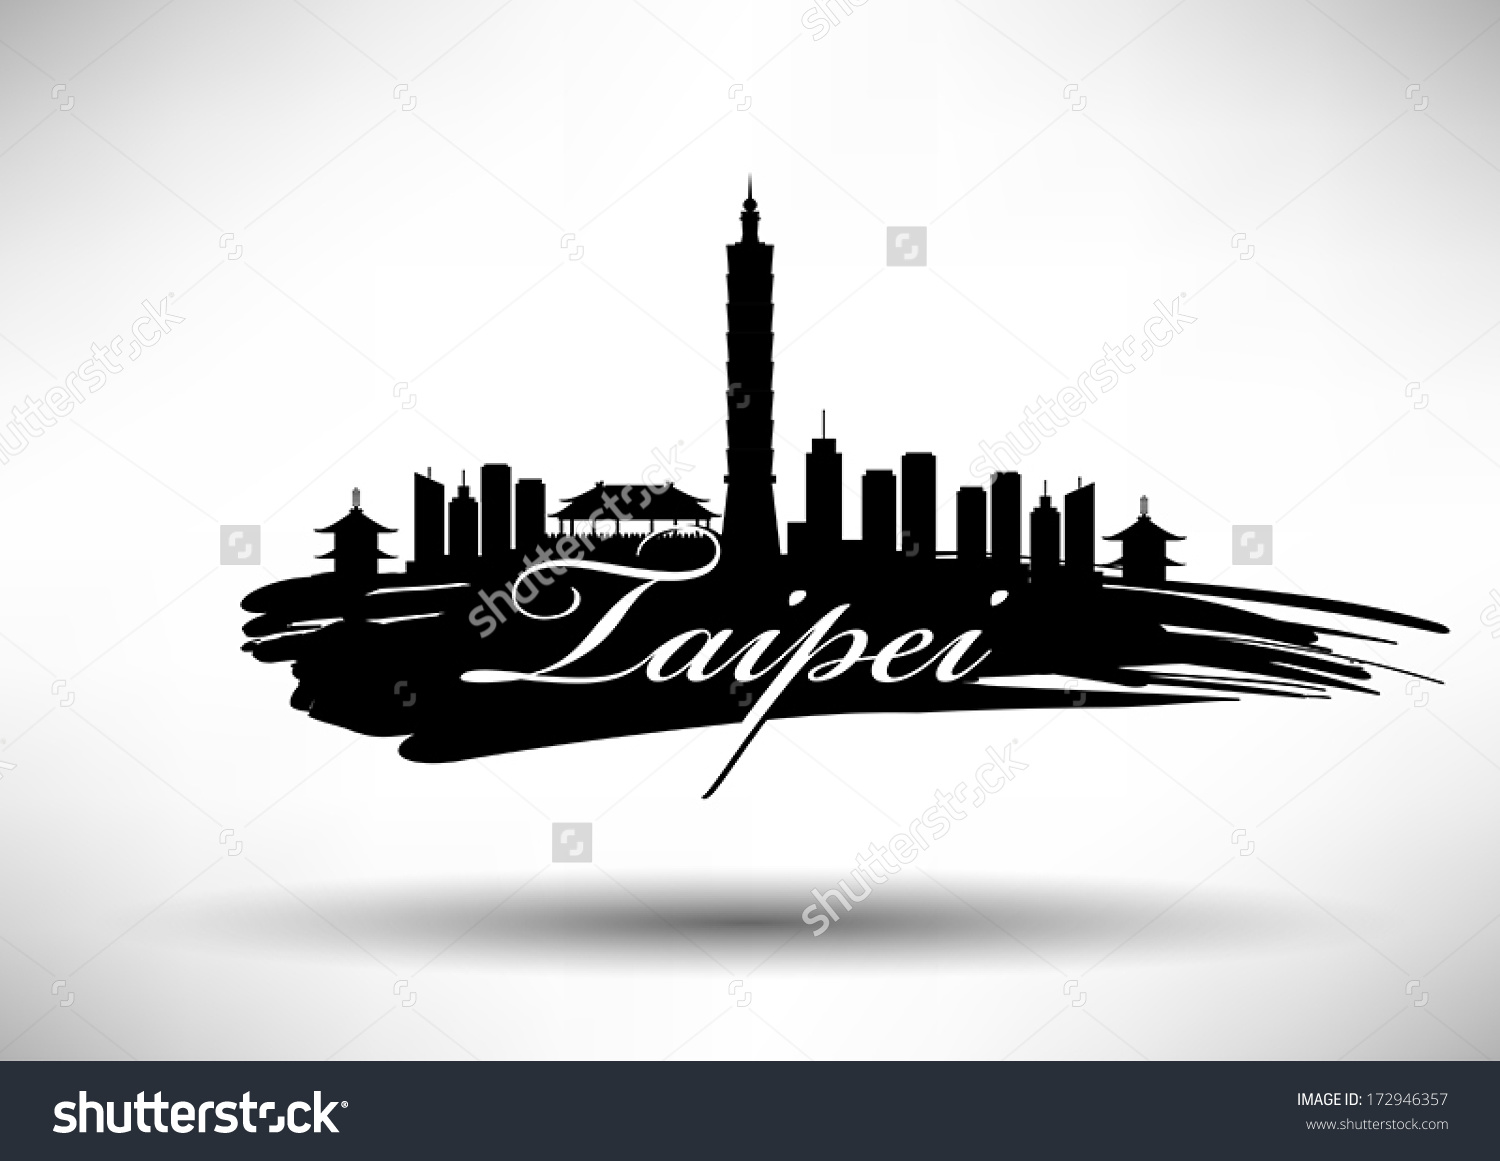 Taipei City Skyline Design Stock Vector 172946357.